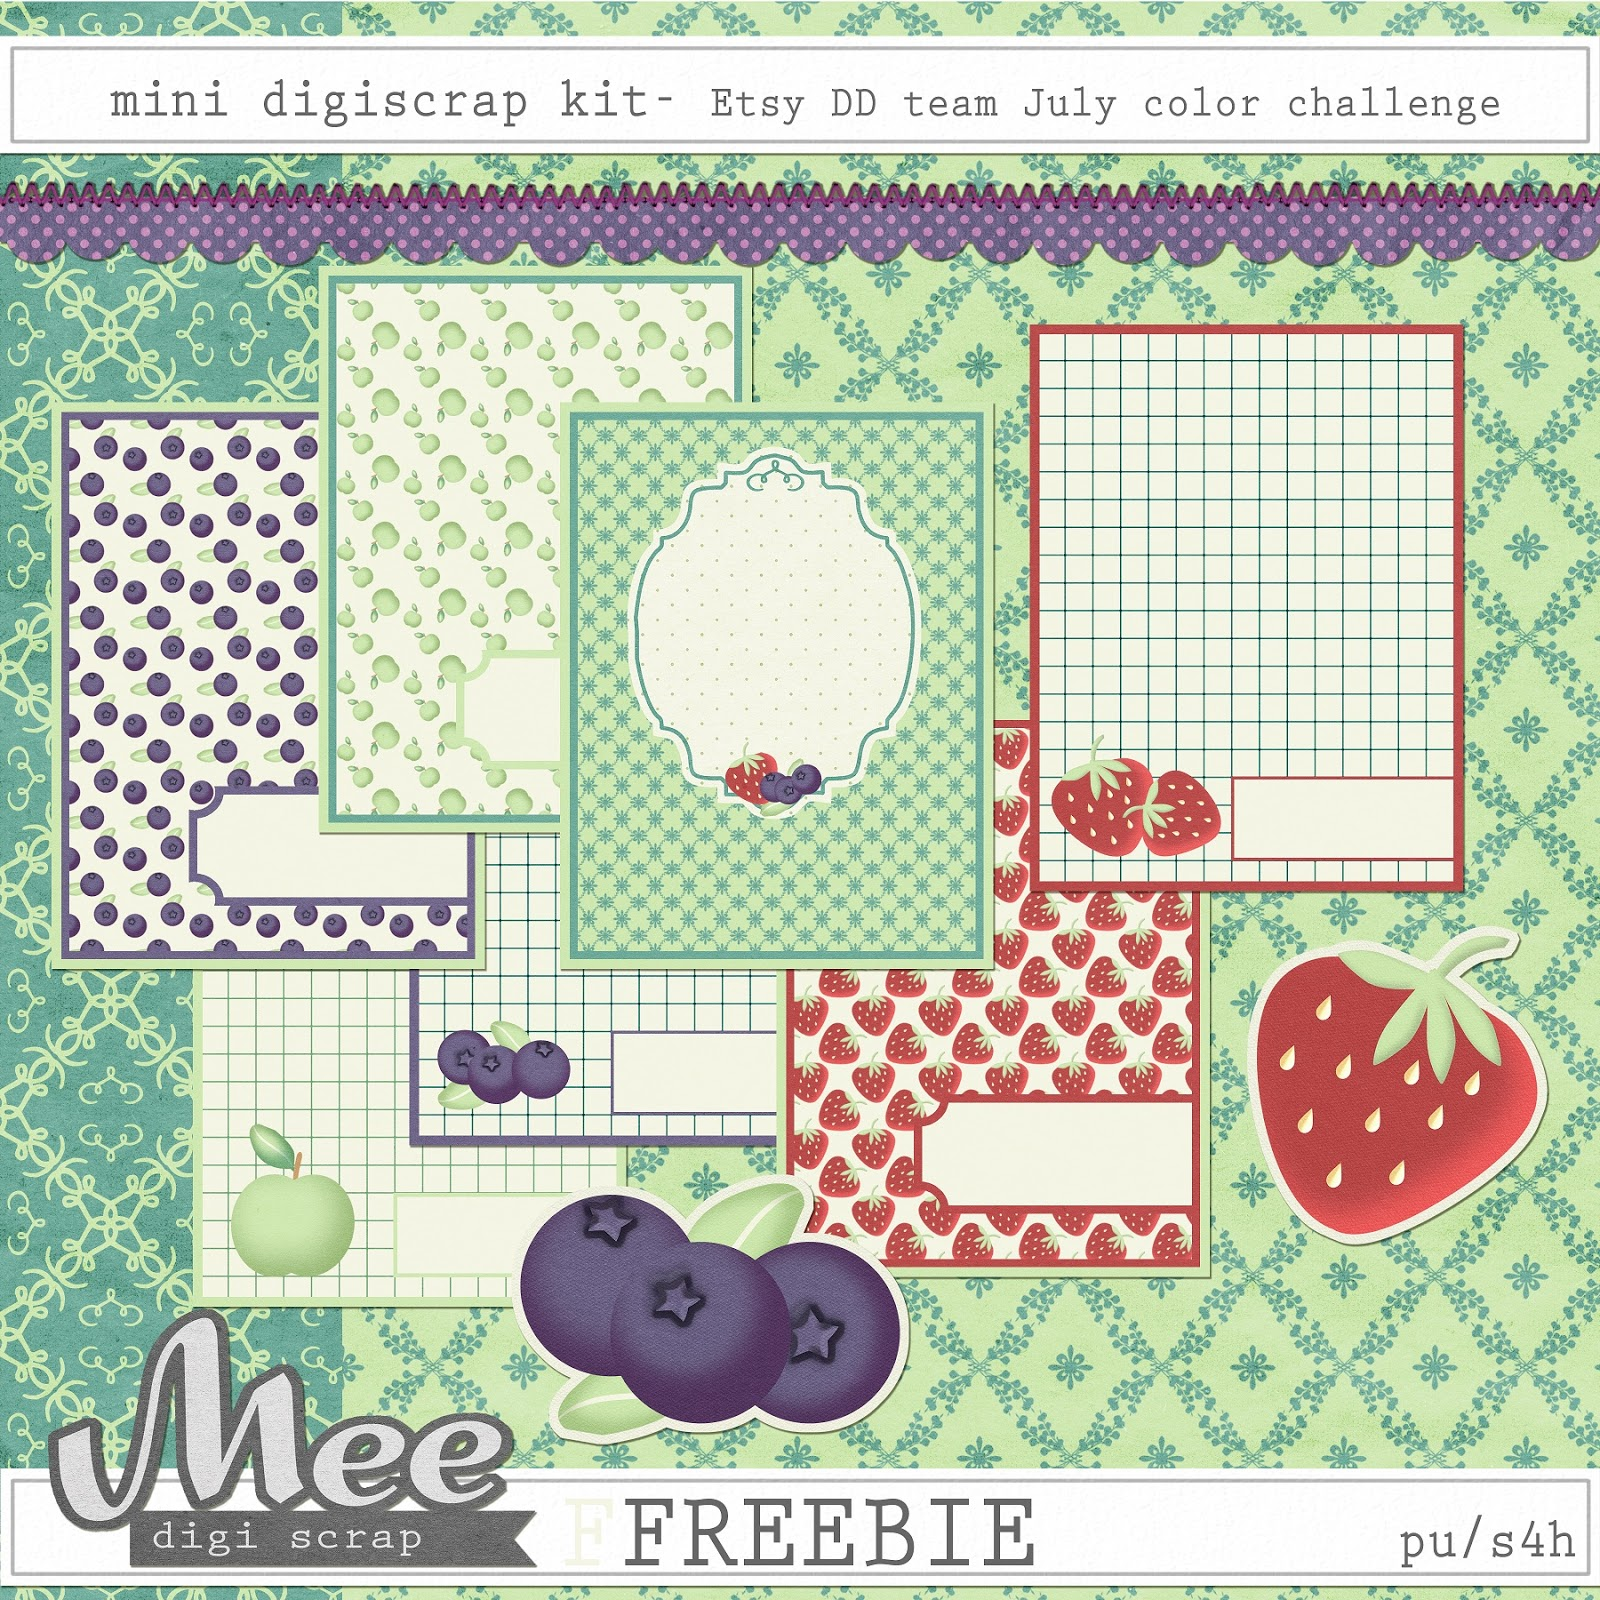 Digital scrapbooking kits free all about scrapbooking ideas - Mee Scrapbook Kits Free Download